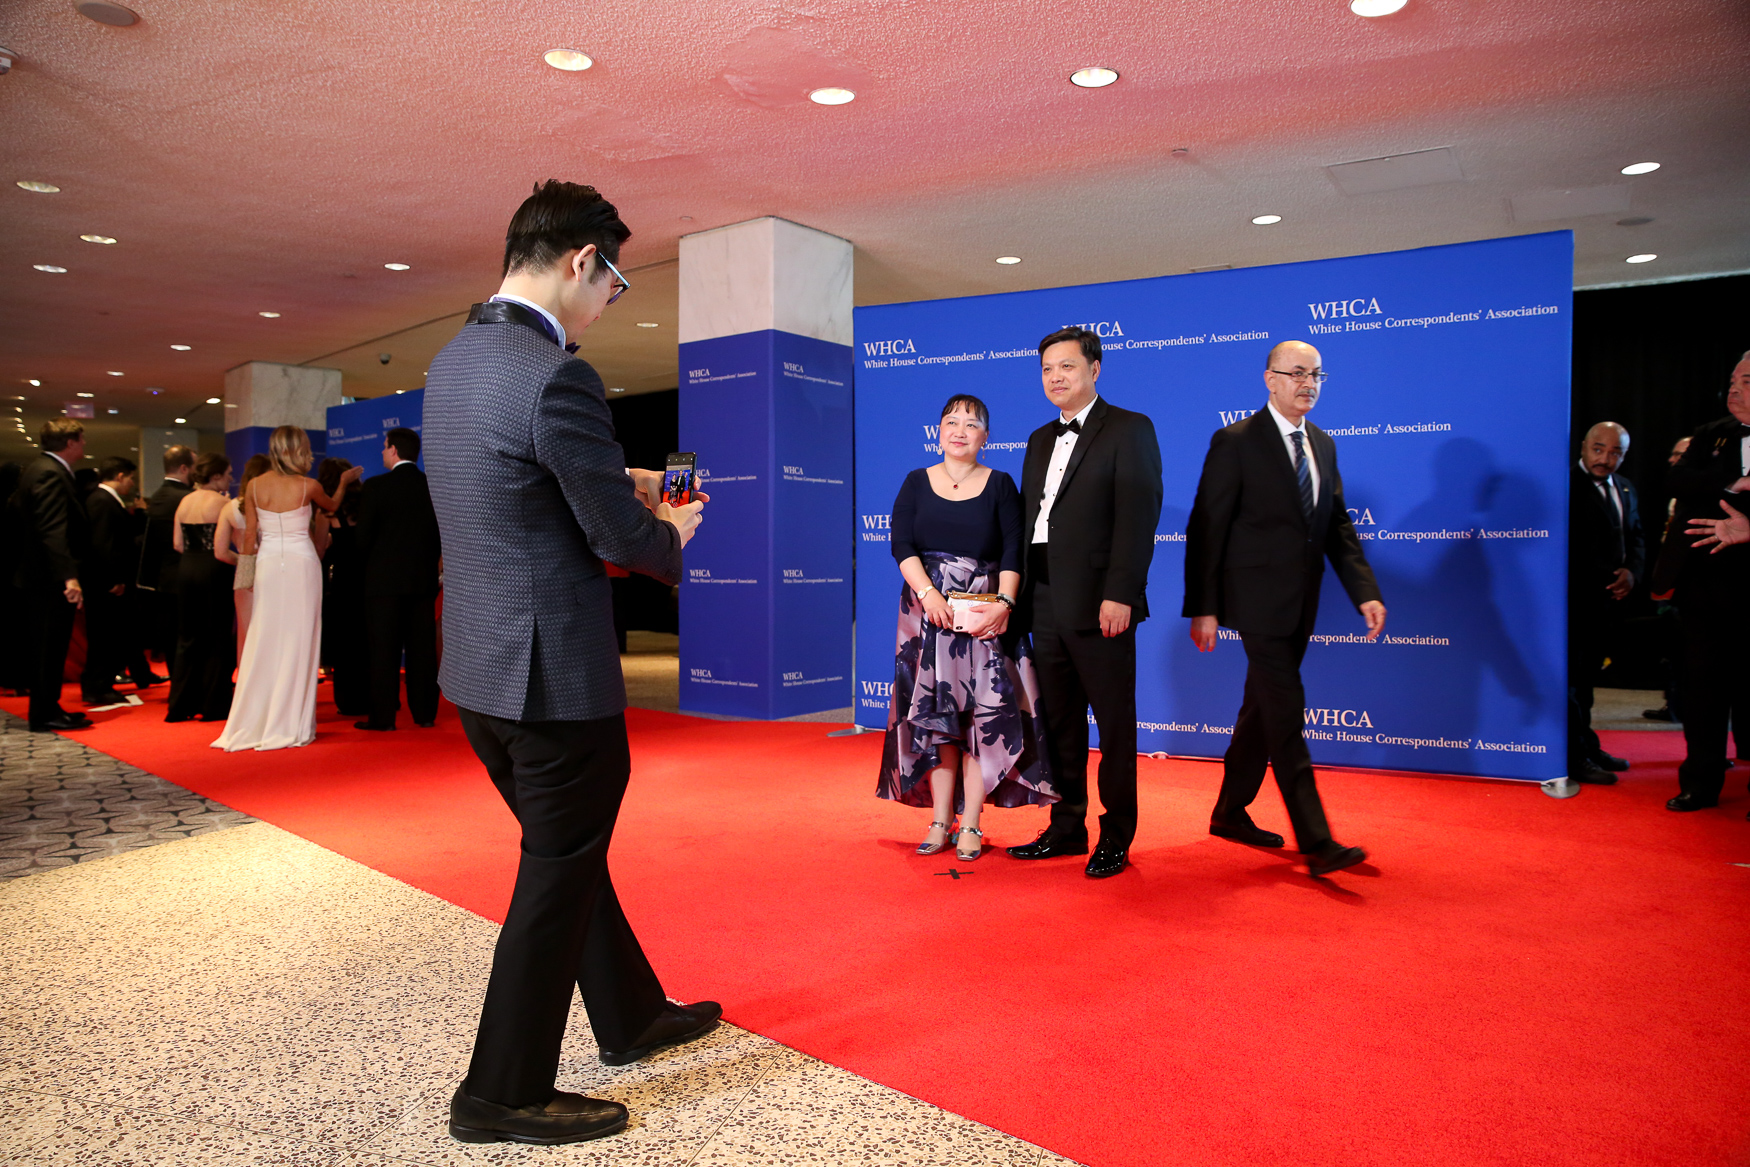 The guest list of 2019 White House Correspondents' Dinner was mostly populated by journalists and lesser-known celebrities, a far cry from years past, but dozens of people{ } still strutted down the red carpet. Notably missing President Donald Trump and members of his administration, but Trump has broken from tradition by skipping the dinner throughout his presidency. Another key difference in this year's festivities is that the dinner's entertainment is historian Ron Chernow - typically the dinner's entertainment is led by a comedian. (Amanda Andrade-Rhoades/DC Refined)